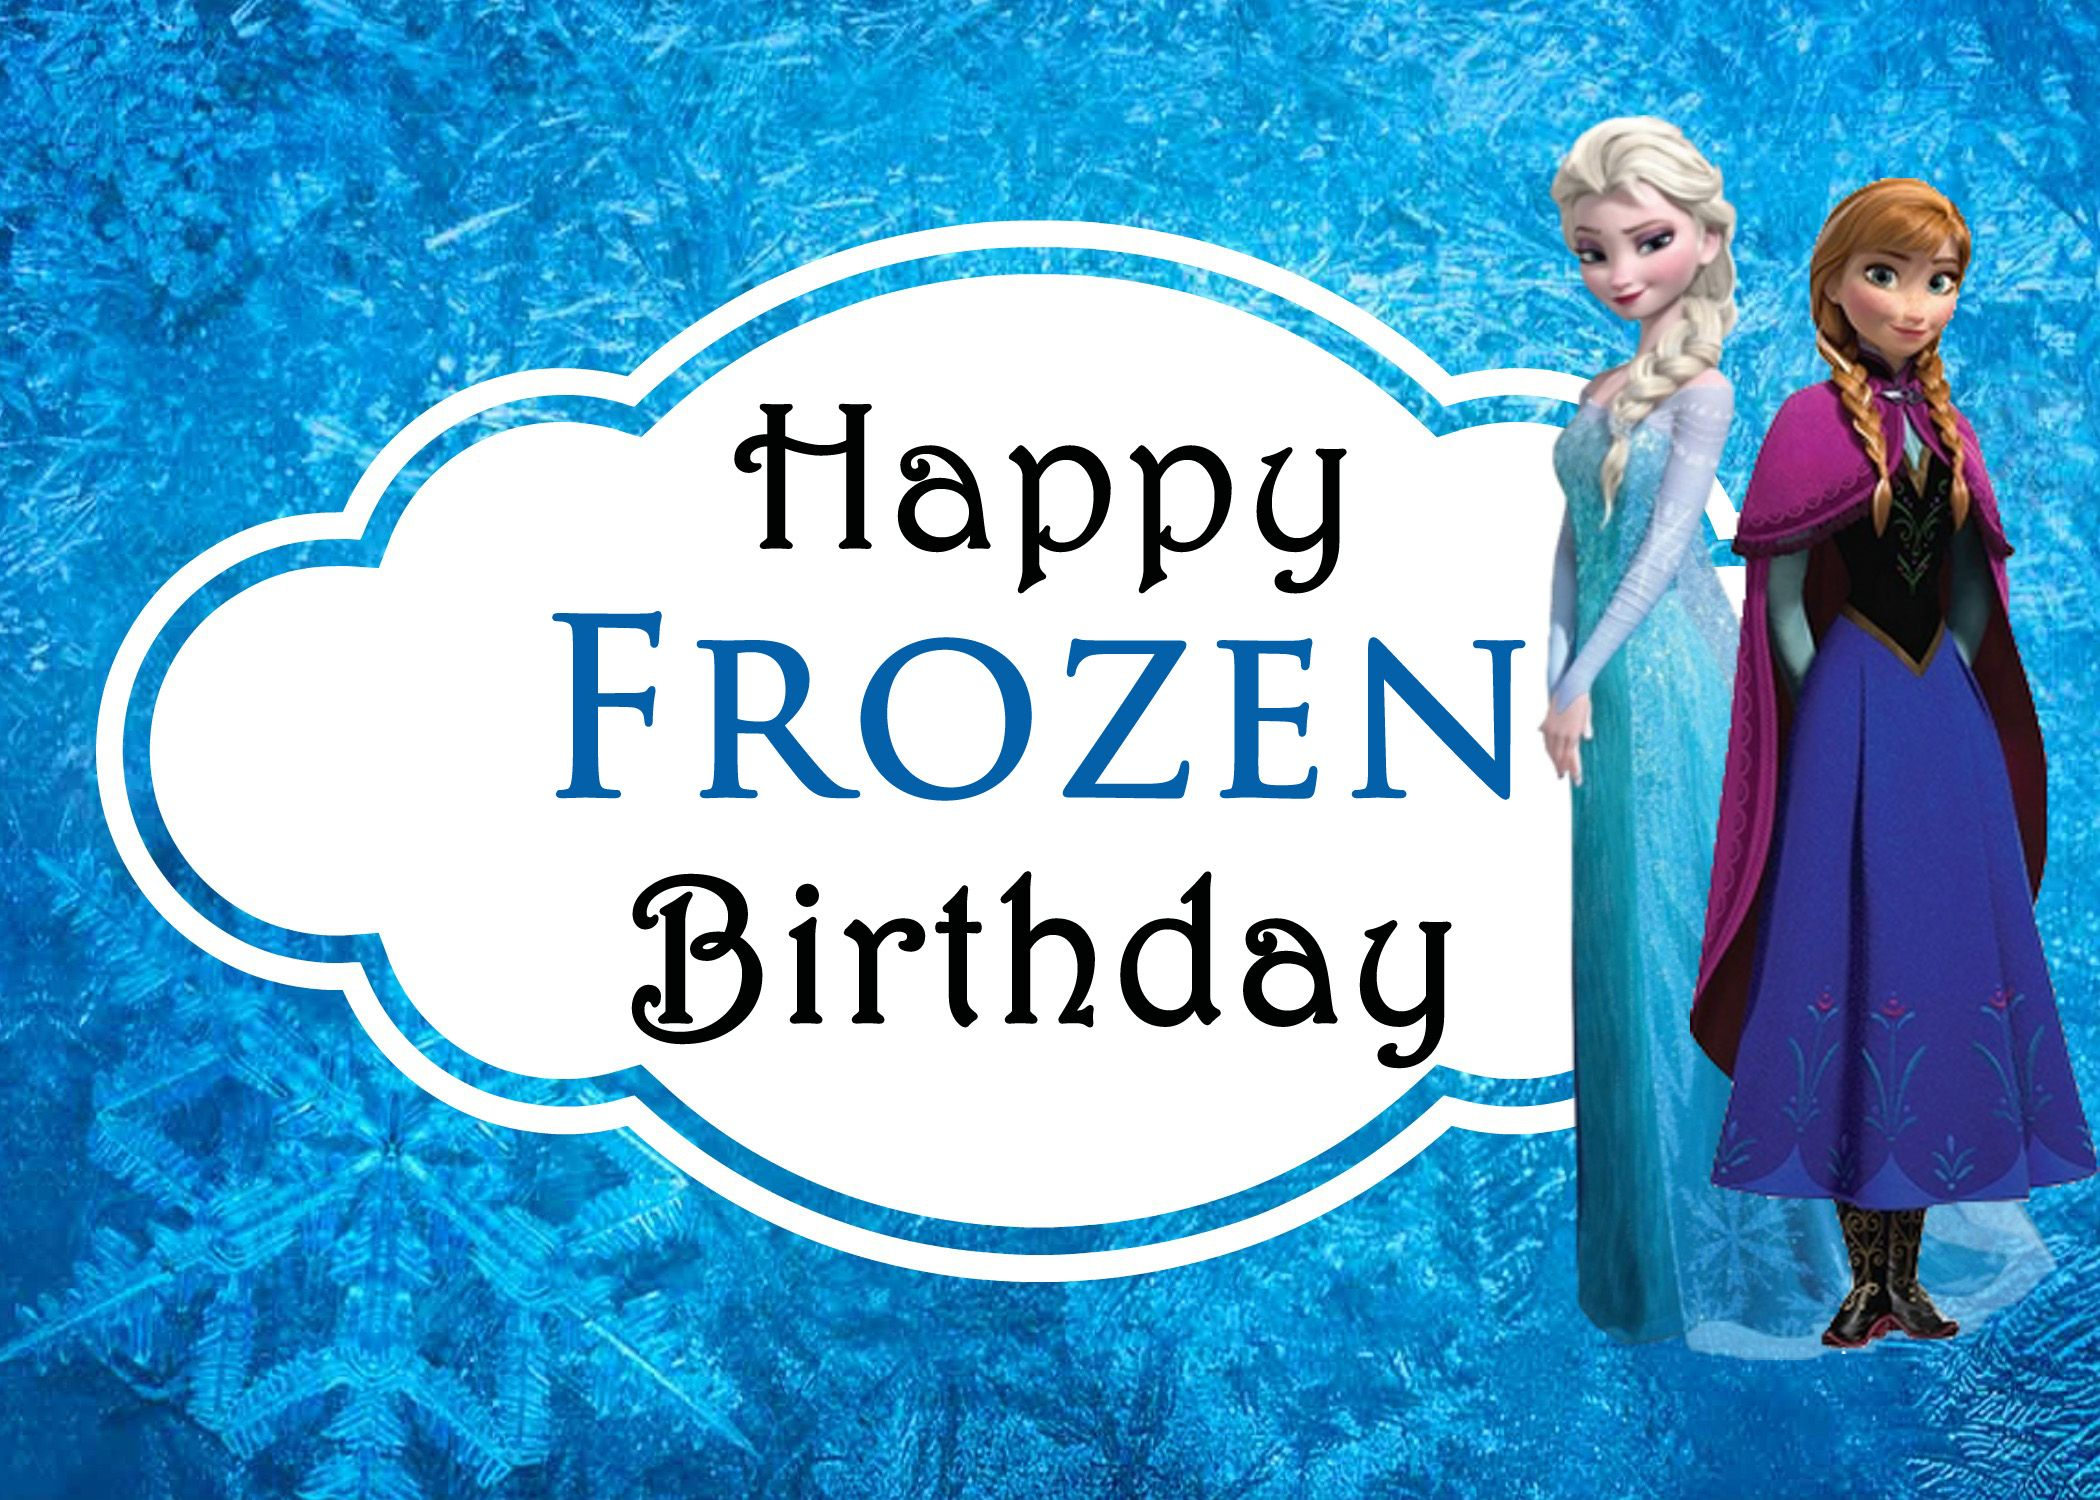 Celebrating Sisters With Disneyu0027s Frozen + Free Printable Birthday Card  Birthday Cards Free Download Printable